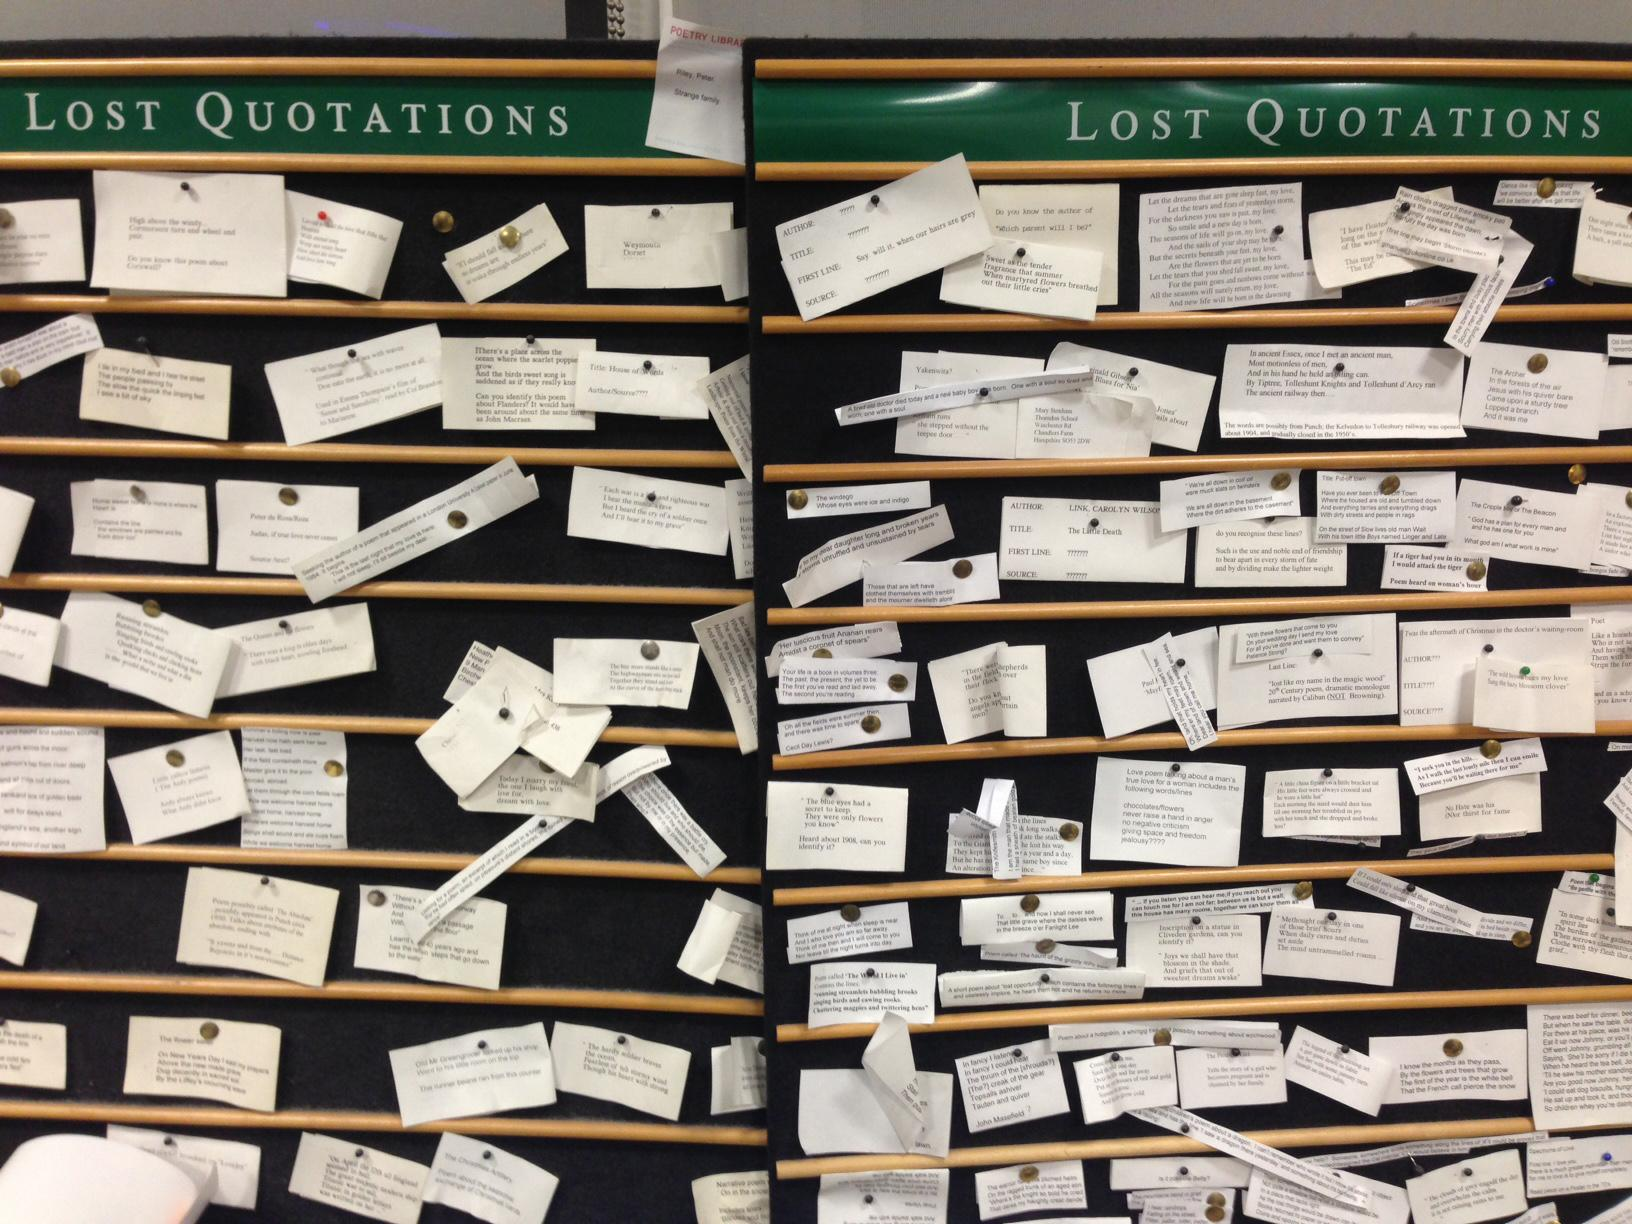 Poetry Library lost quotes board